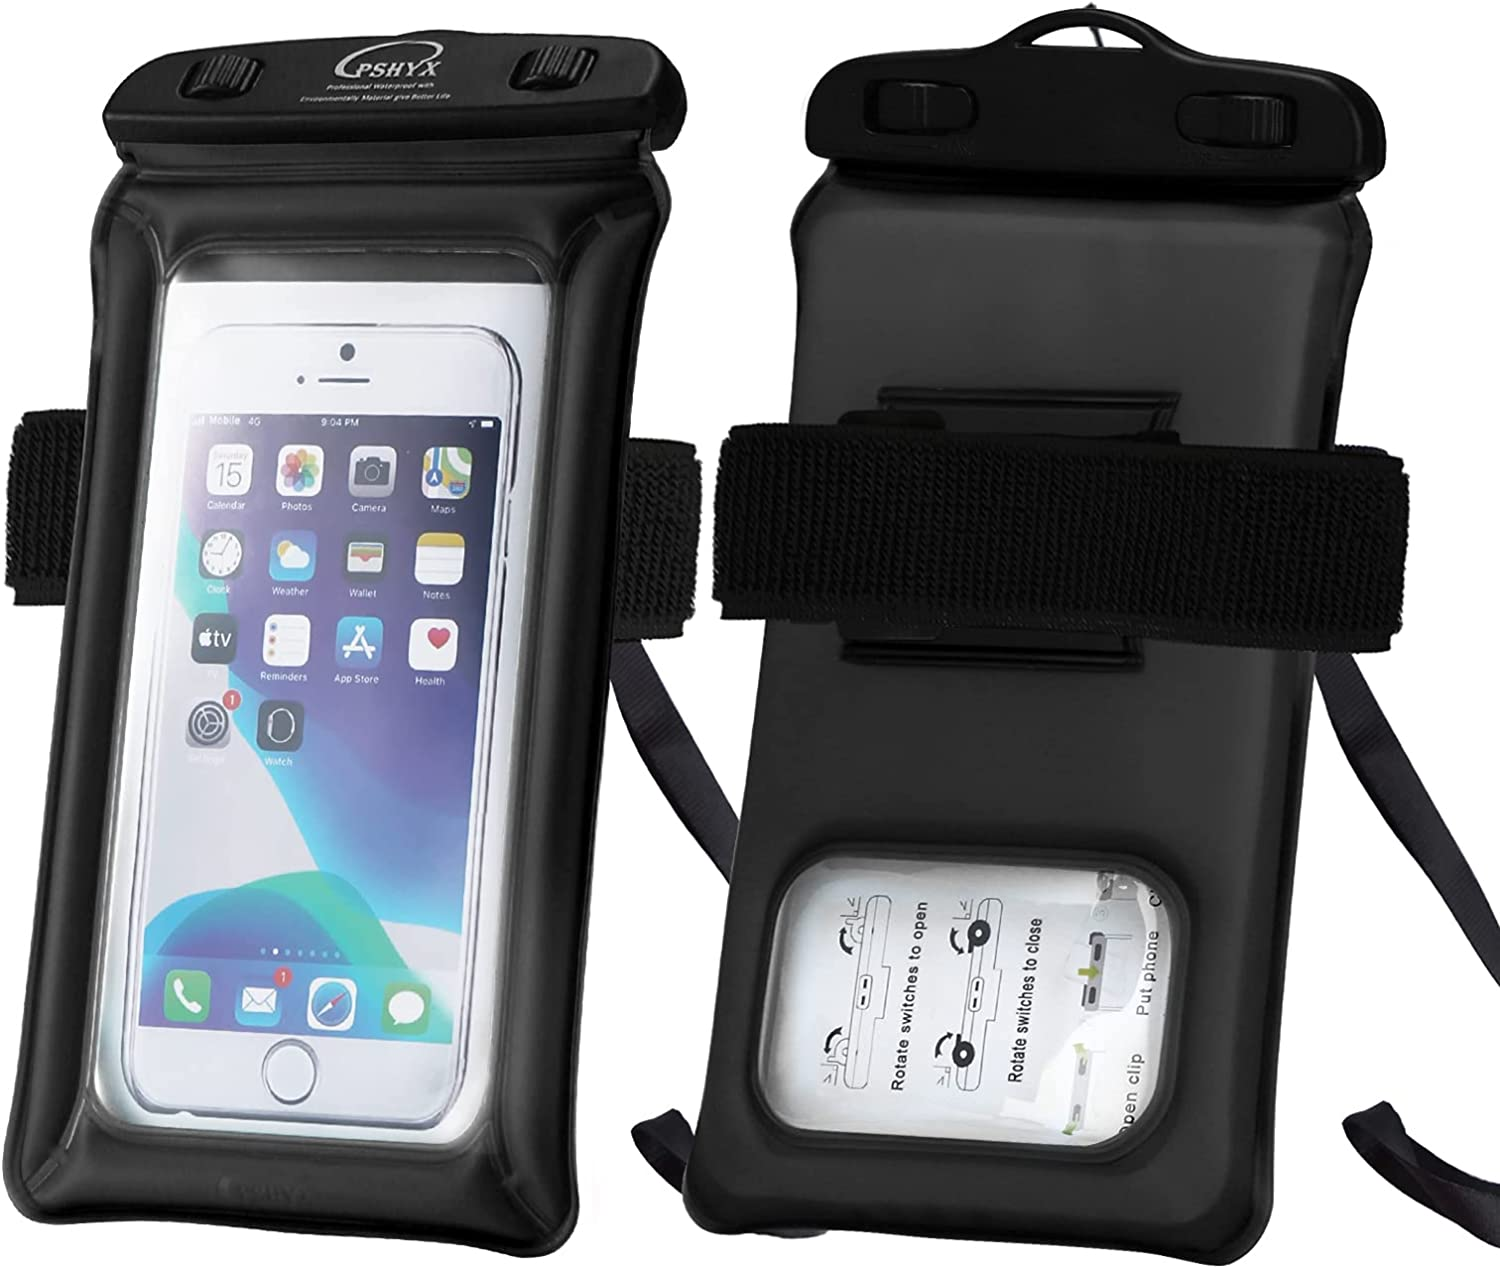 PSHYX TPU Floating Waterproof Phone Case,Cell Phone Dry Bag, Universal Waterproof Phone Pouch with Arm Band and Lanyard for iPhone 11 12 Pro Max xr 6 7 8Plus Samsung Galaxy S20 S20+ S10(Black,1pack)